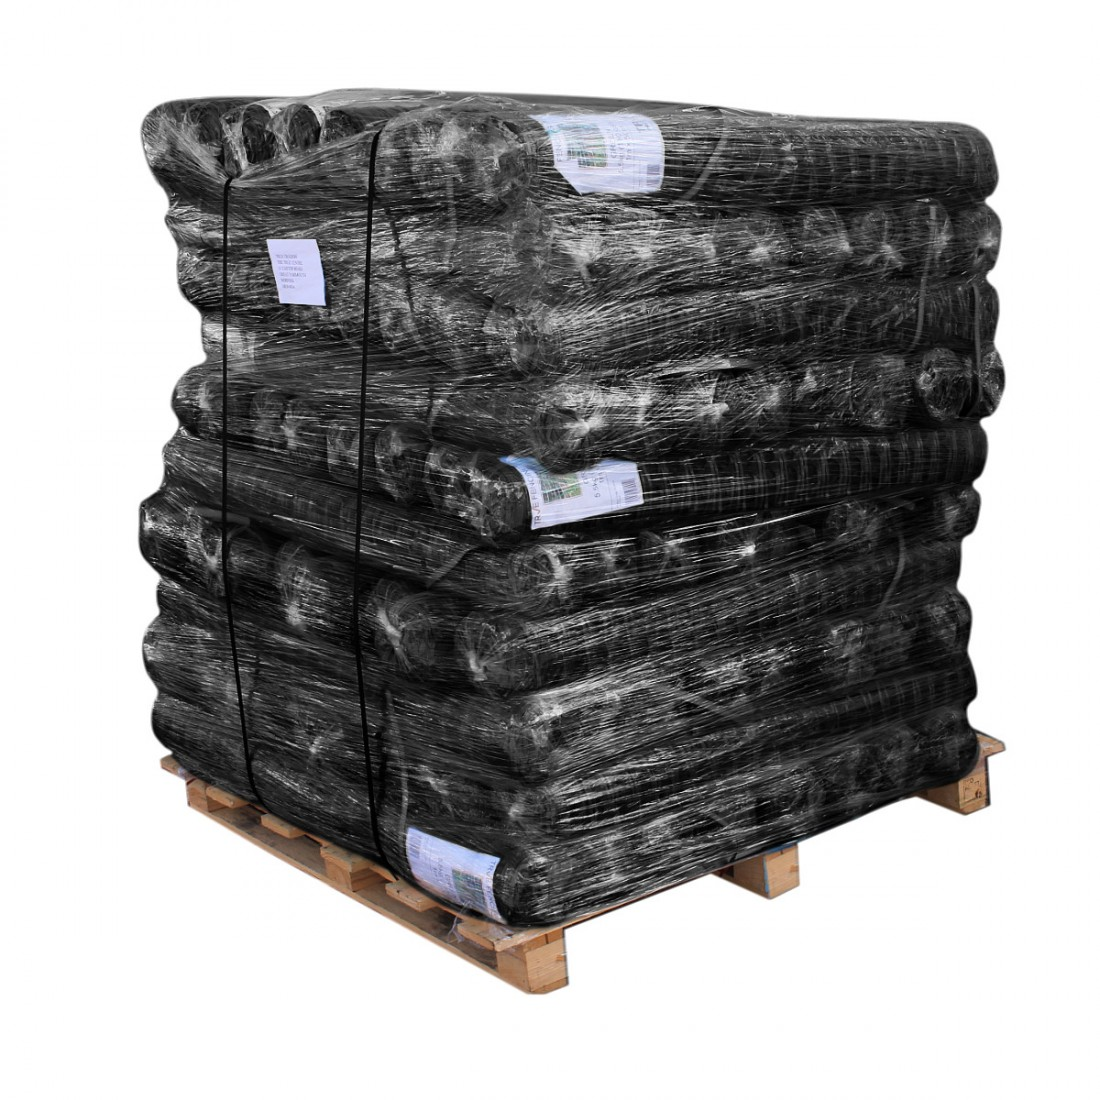 Pallet of Black Barrier Mesh Fence